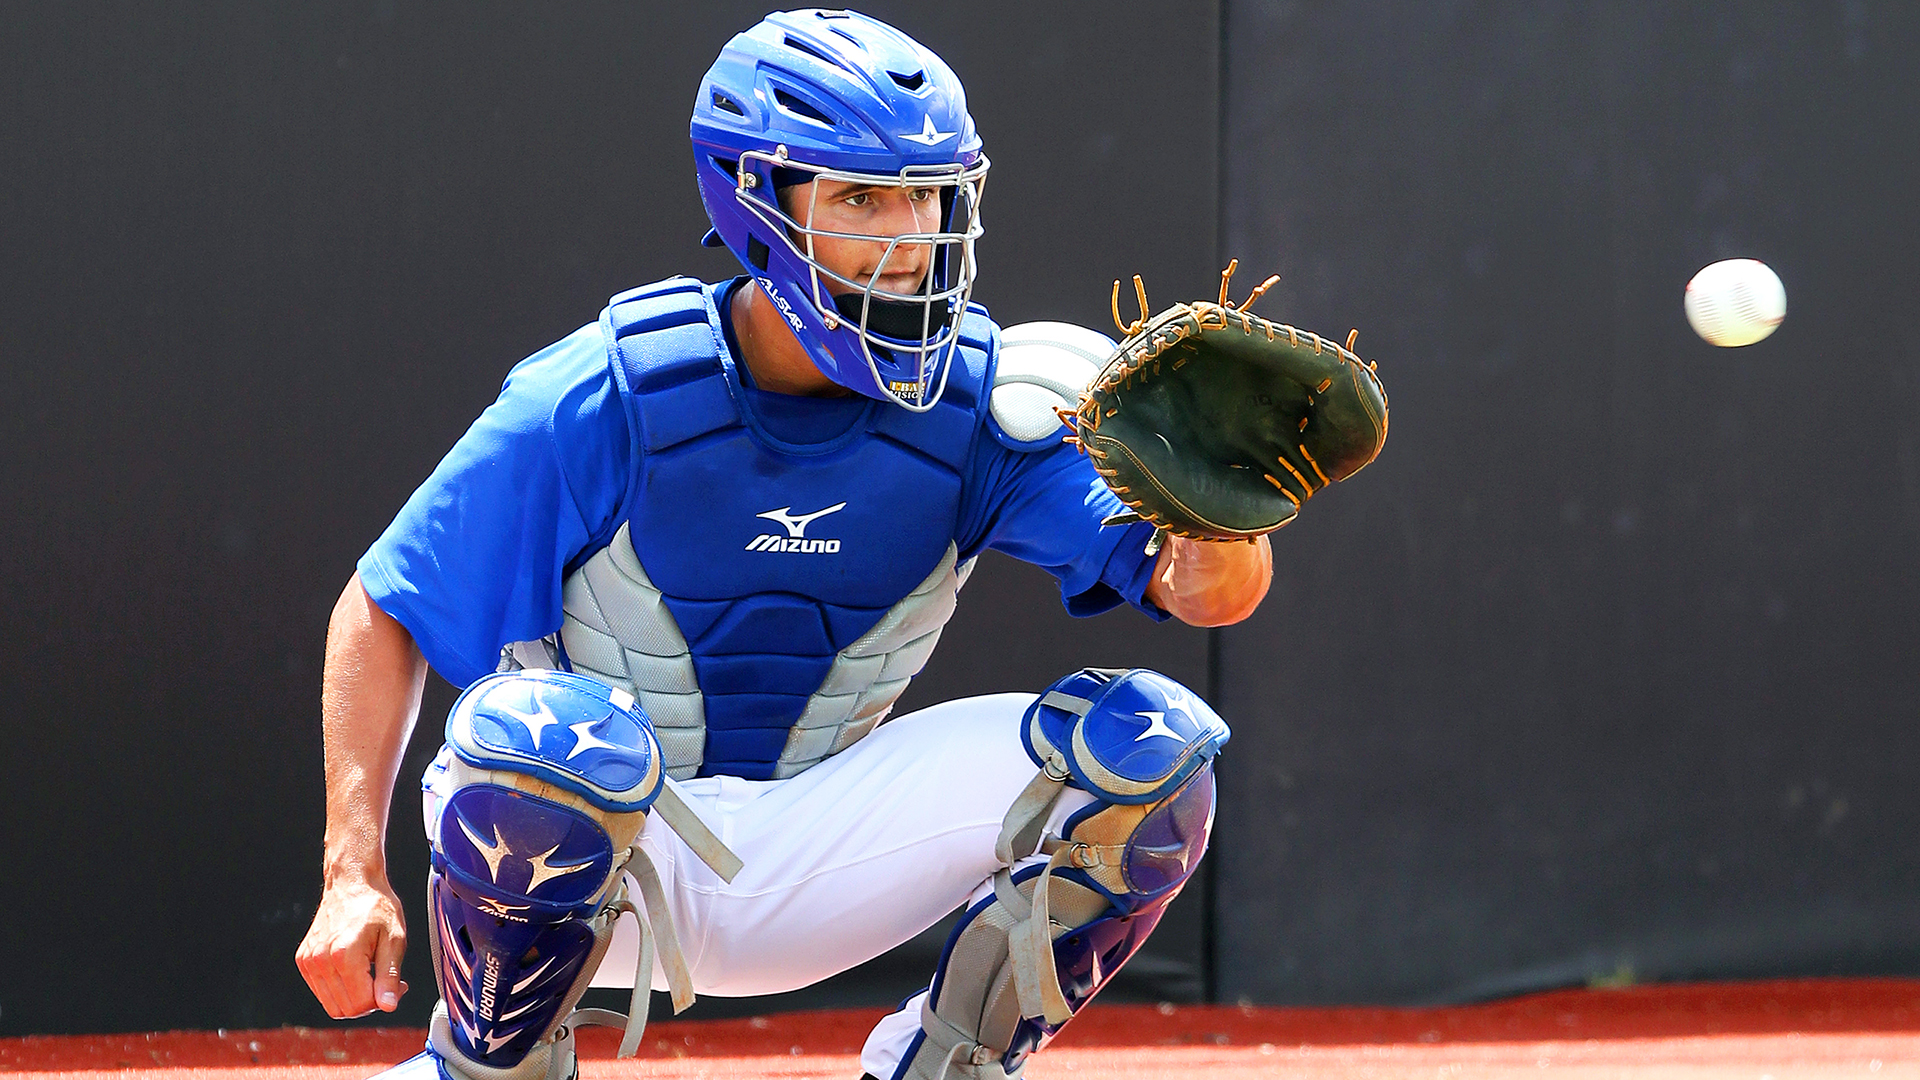 Blue Jays Prospect Max Pentecost Making Up For Lost Time Sportsnetca